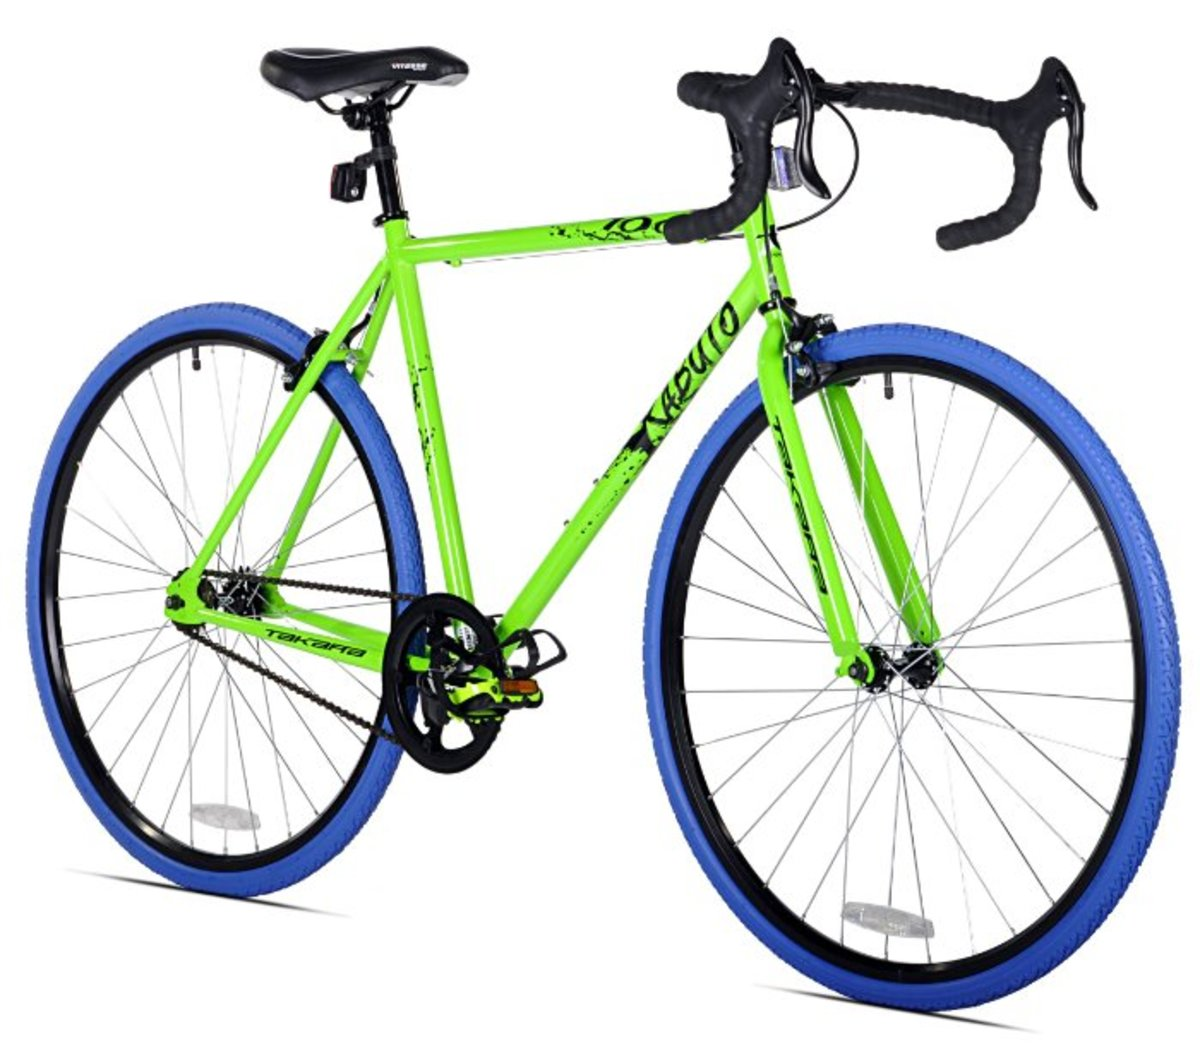 Takara Kabuto Single Speed Road Bike (Green/Blue)